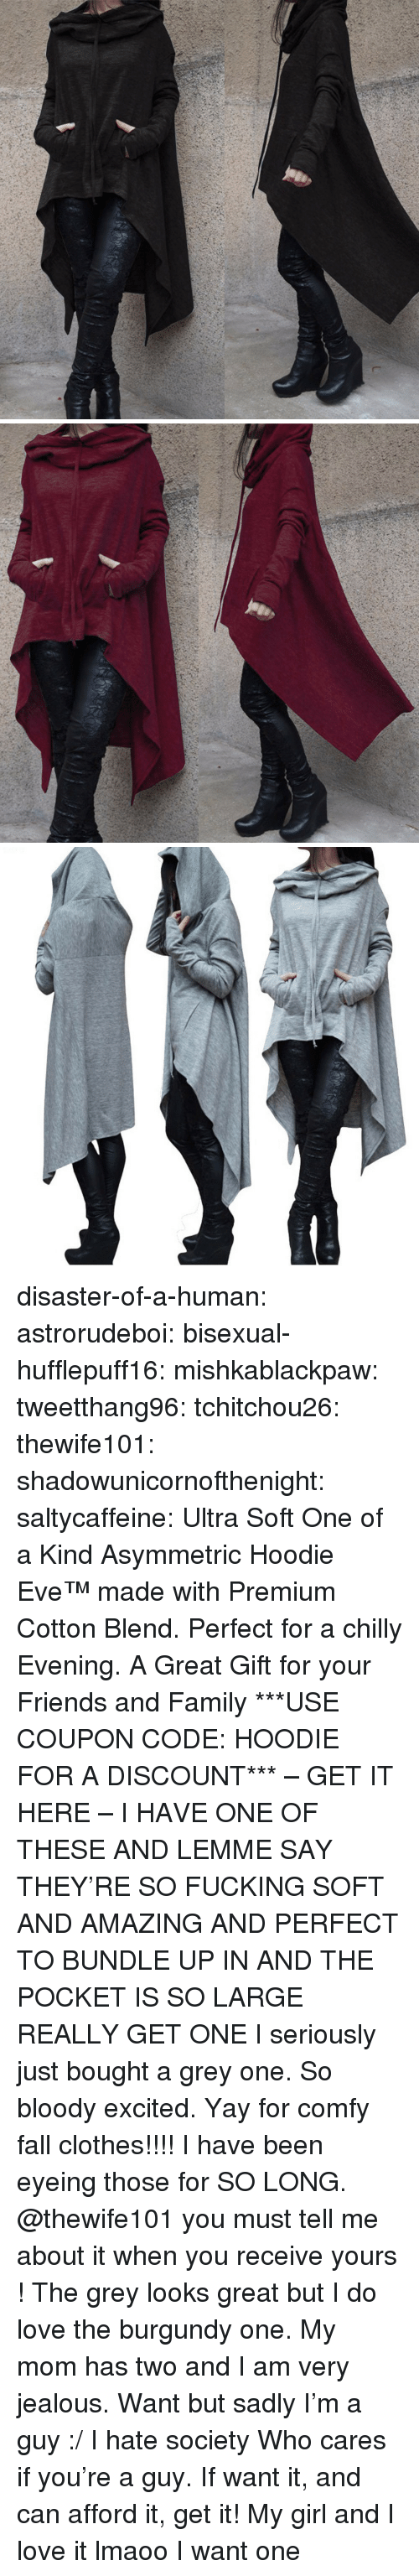 Clothes, Fall, and Family: disaster-of-a-human:  astrorudeboi:   bisexual-hufflepuff16:  mishkablackpaw:   tweetthang96:  tchitchou26:  thewife101:  shadowunicornofthenight:  saltycaffeine:  Ultra Soft One of a Kind Asymmetric Hoodie Eve™made with Premium Cotton Blend. Perfect for a chilly Evening. A Great Gift for your Friends and Family ***USE COUPON CODE: HOODIE FOR A DISCOUNT*** – GET IT HERE –   I HAVE ONE OF THESE AND LEMME SAY THEY'RE SO FUCKING SOFT AND AMAZING AND PERFECT TO BUNDLE UP IN AND THE POCKET IS SO LARGE REALLY GET ONE   I seriously just bought a grey one. So bloody excited. Yay for comfy fall clothes!!!!   I have been eyeing those for SO LONG. @thewife101 you must tell me about it when you receive yours ! The grey looks great but I do love the burgundy one.   My mom has two and I am very jealous.   Want but sadly I'm a guy :/ I hate society   Who cares if you're a guy. If want it, and can afford it, get it!   My girl and I love it lmaoo   I want one